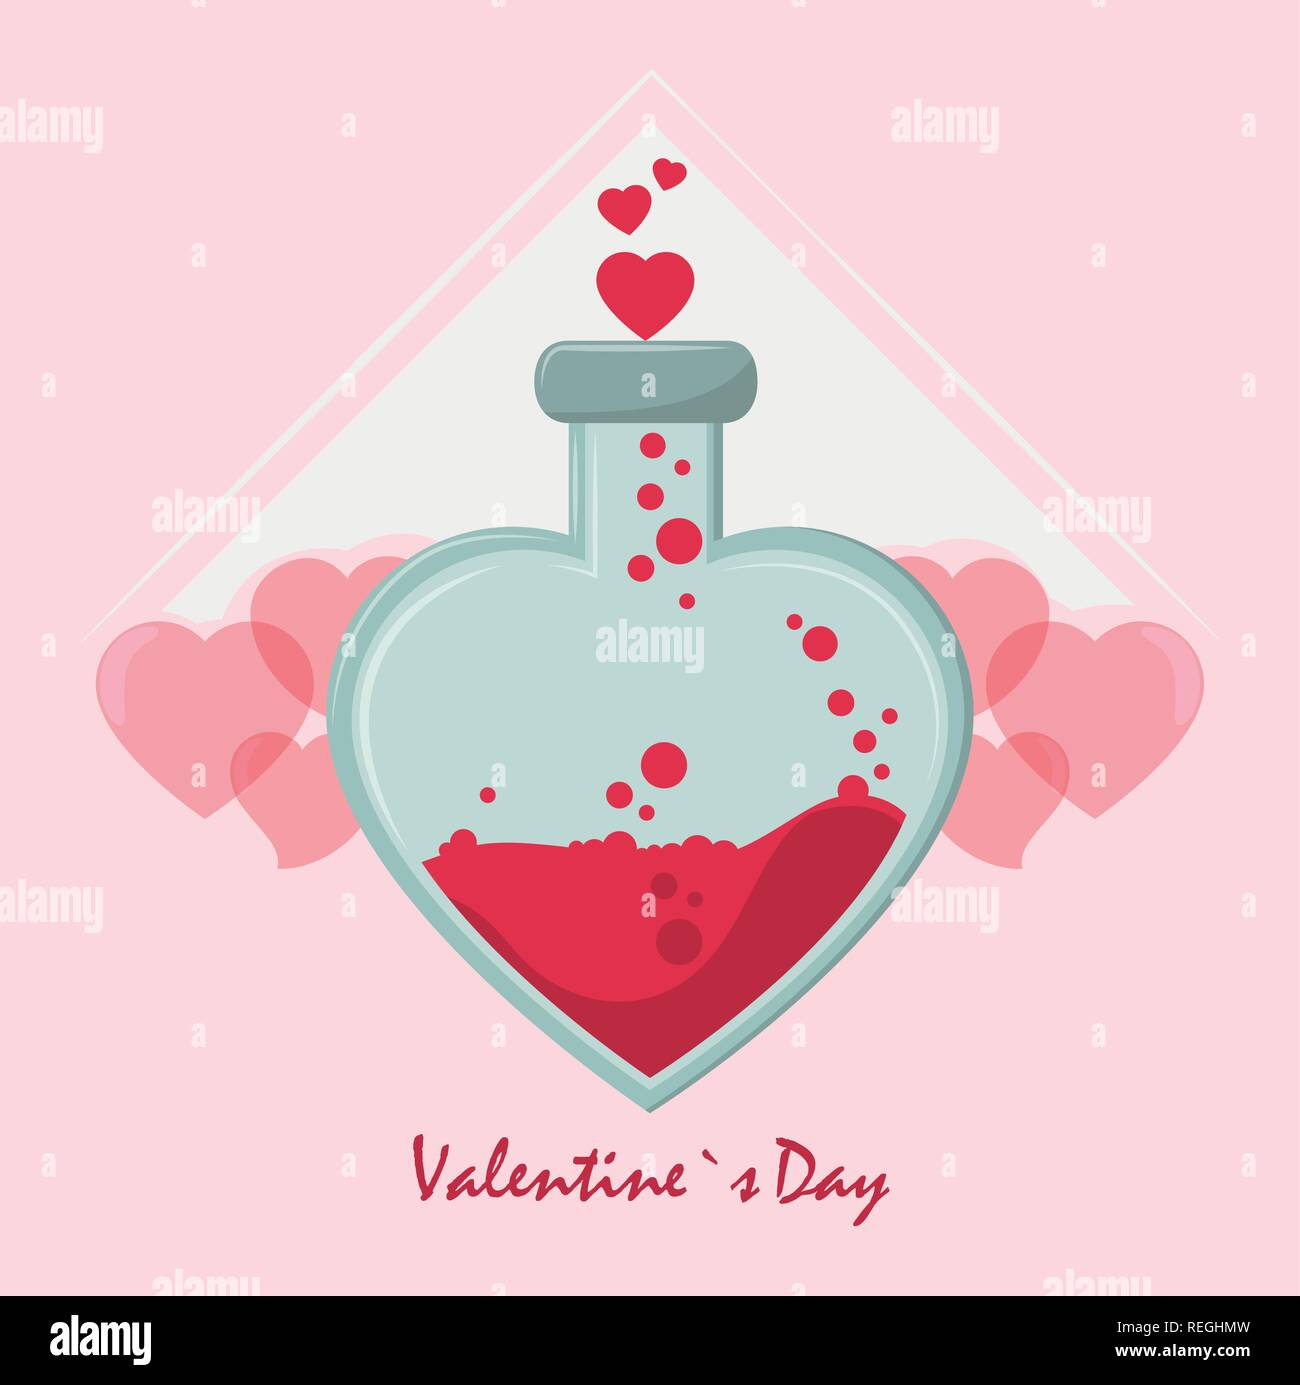 Happy valentines day card - Stock Image